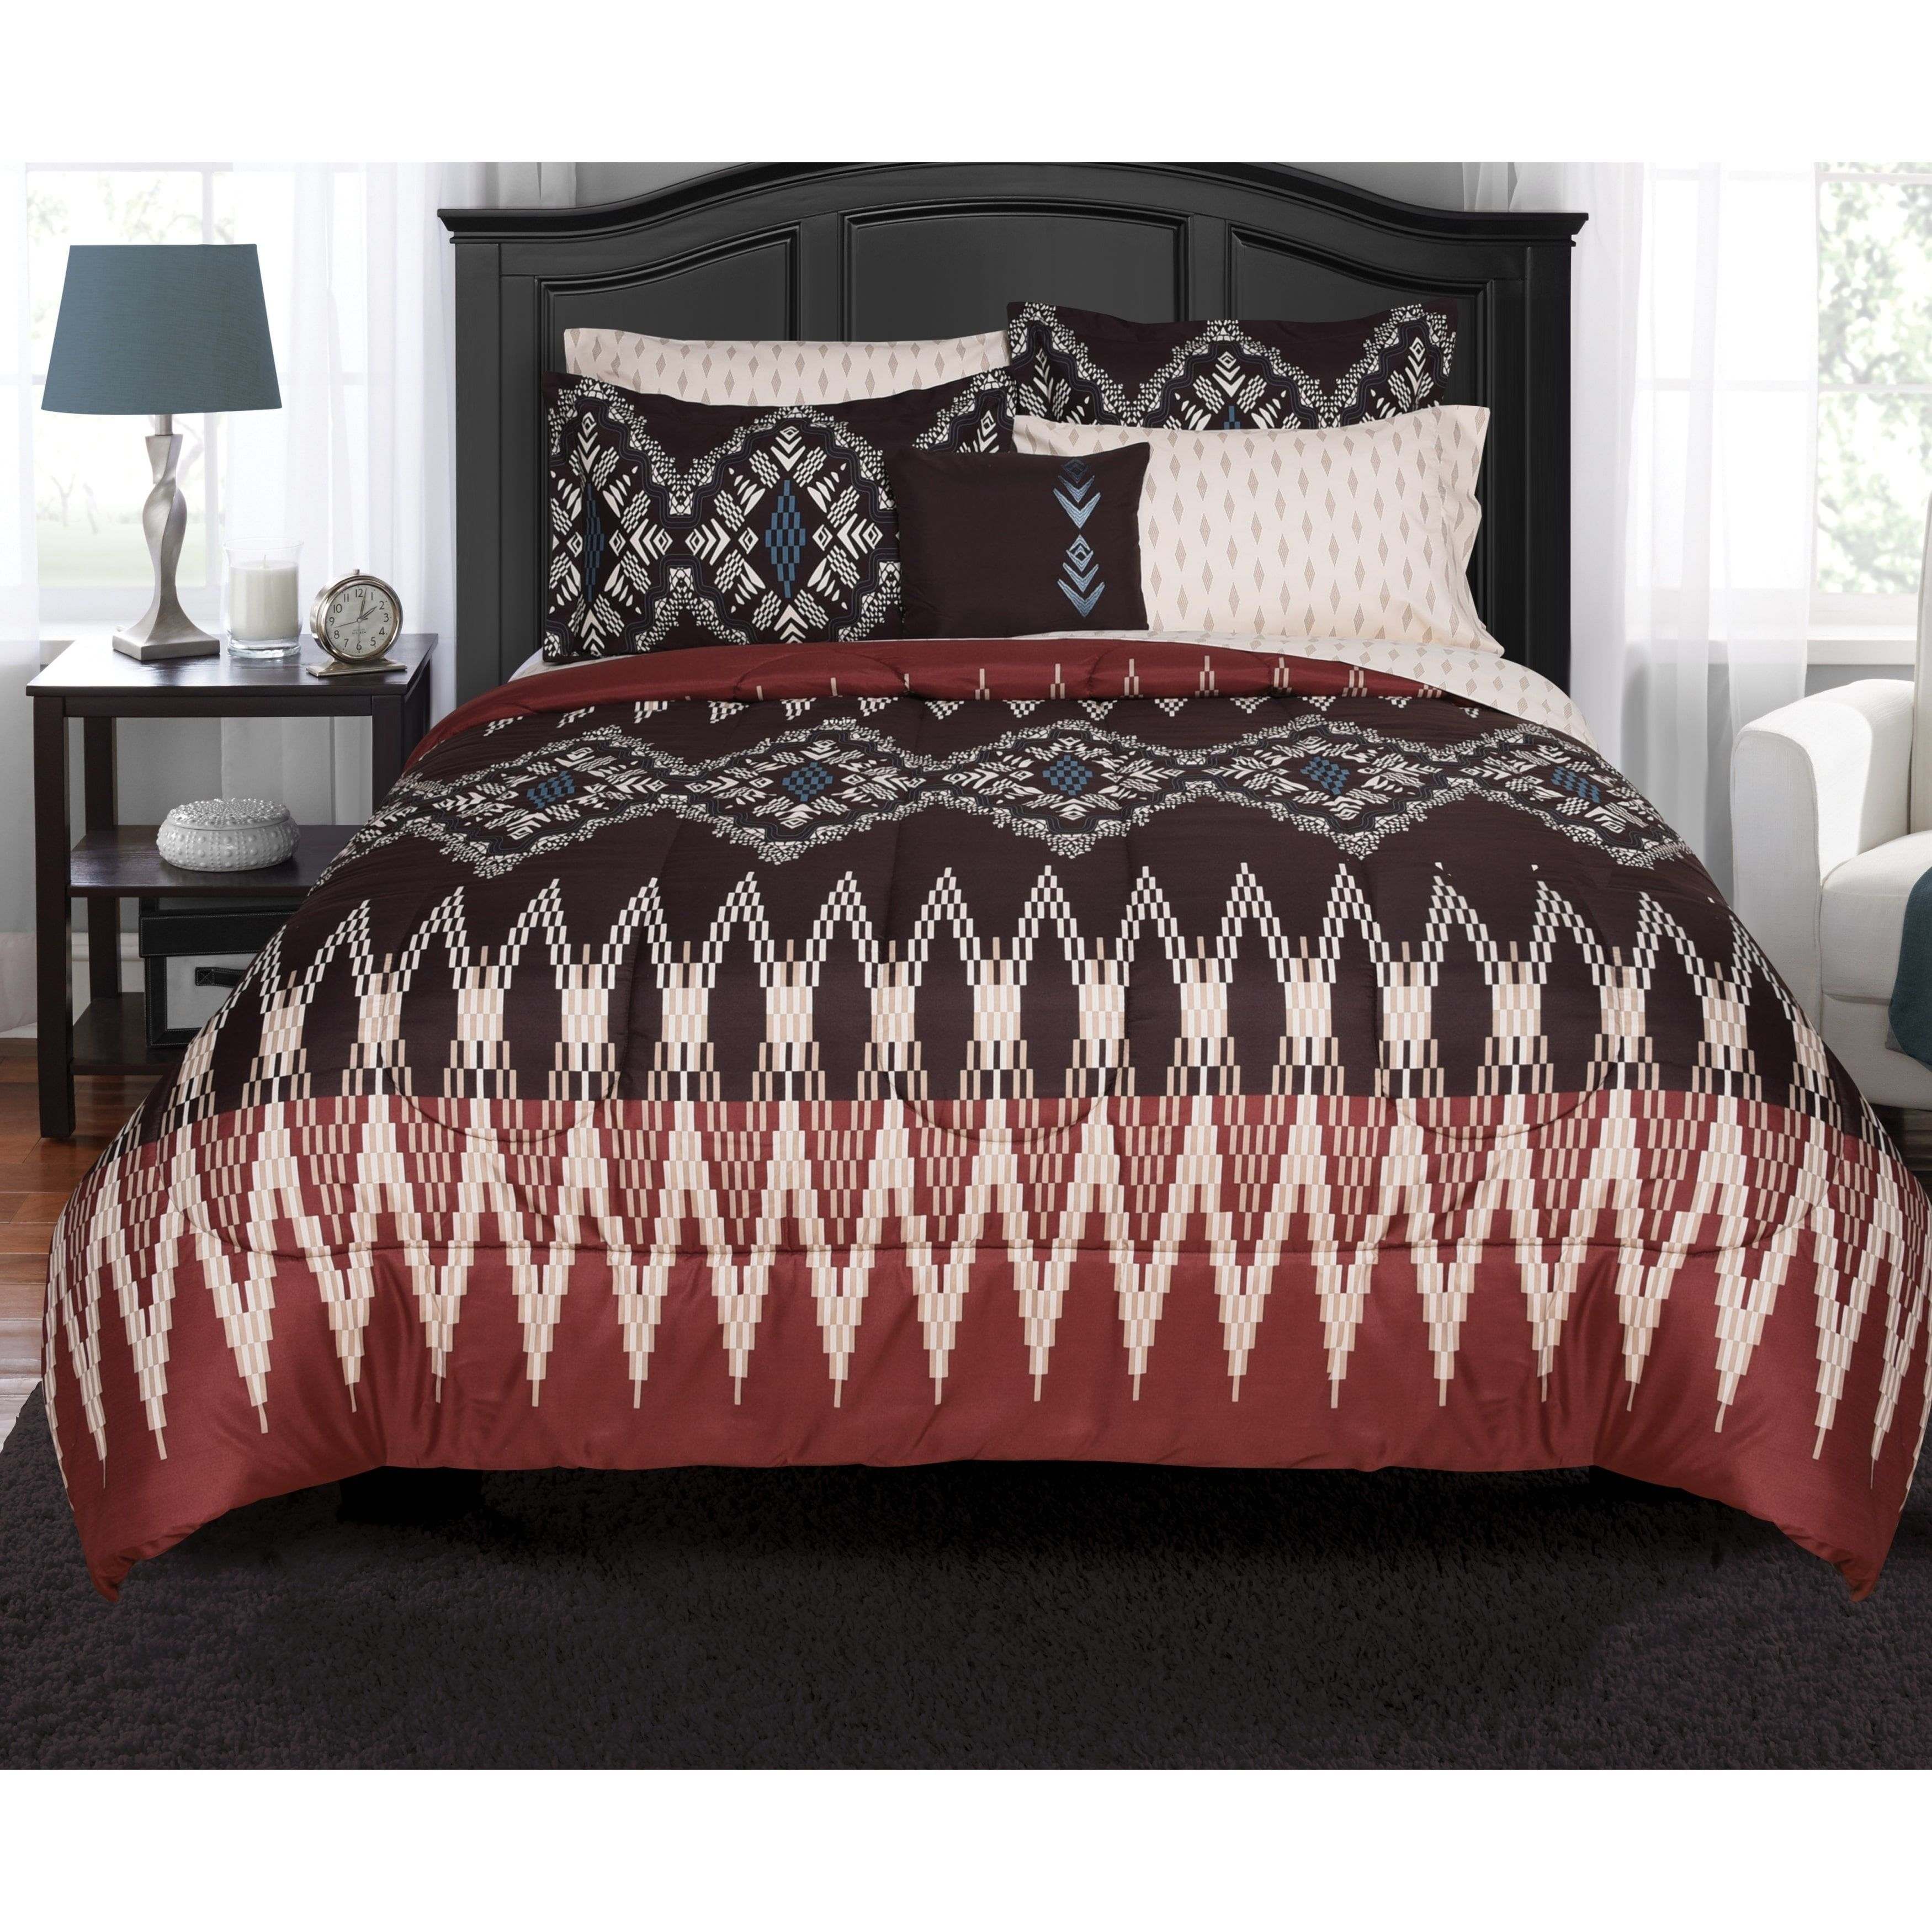 Overstock Com Online Shopping Bedding Furniture Electronics Jewelry Clothing More Complete Bedding Set Rustic Bedding Sets Most Comfortable Sheets